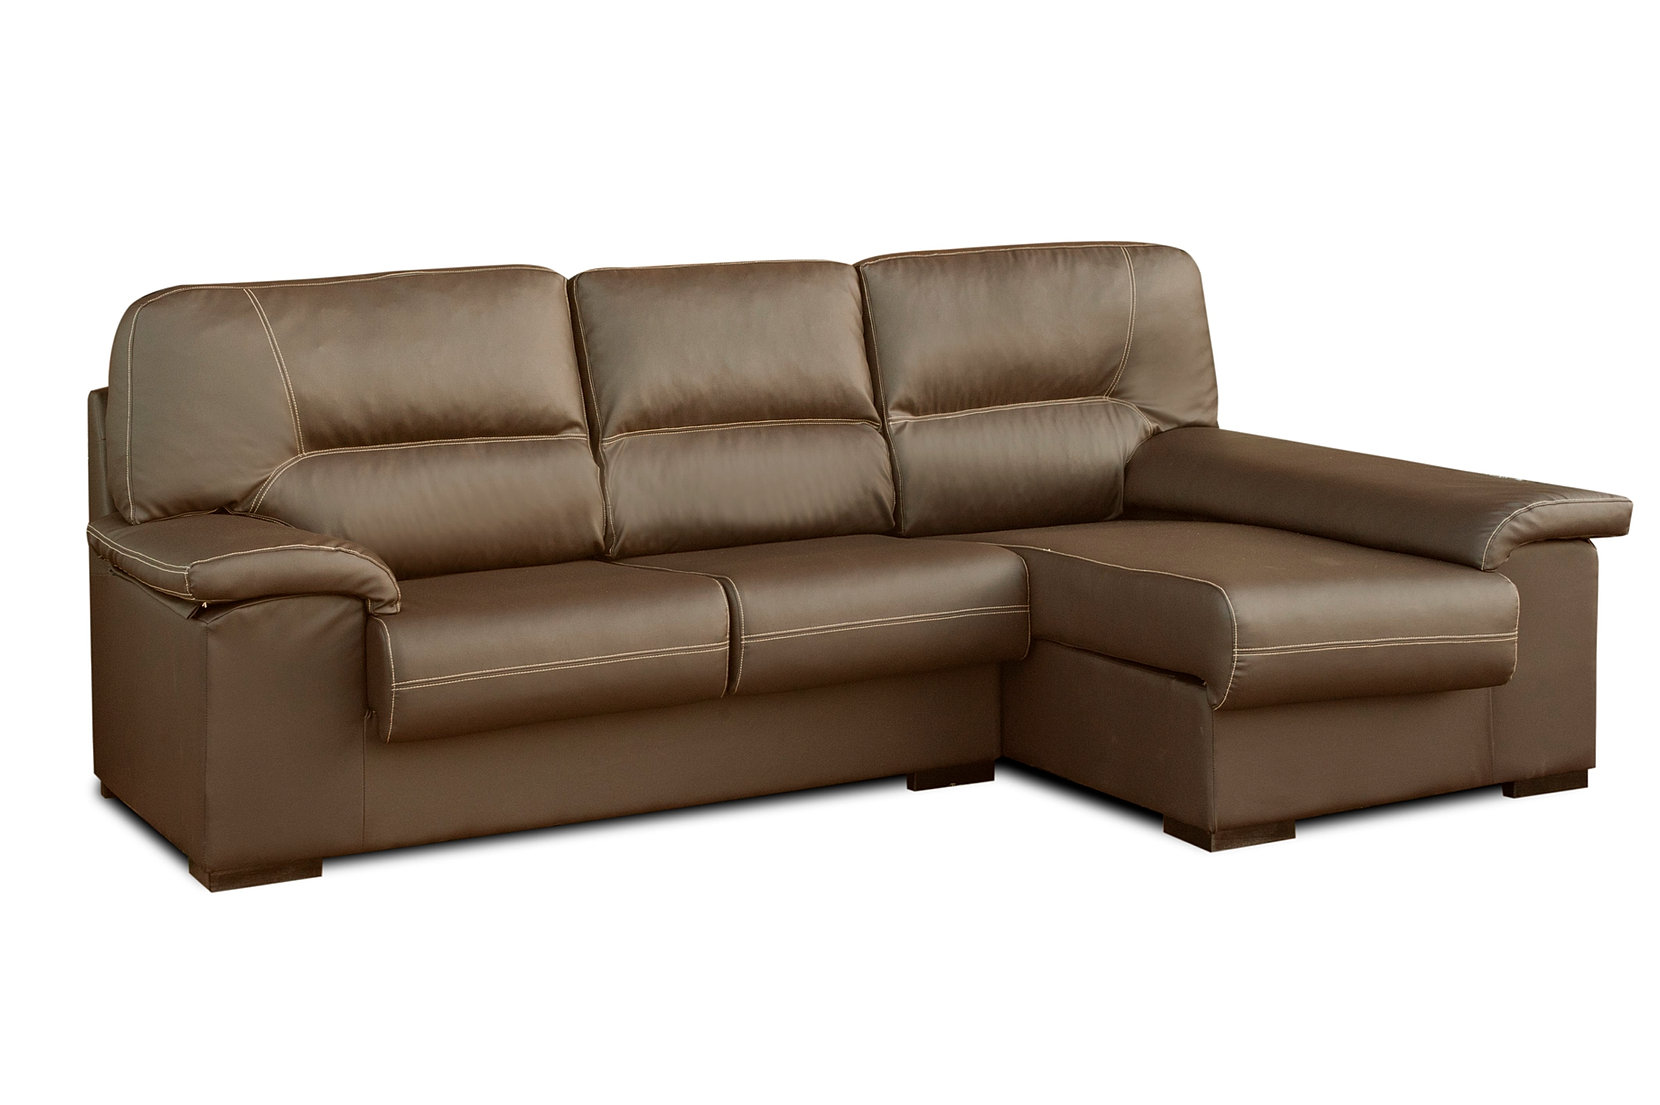 Liquisof s sof s chaiselongues baratos en m laga for Liquidacion sofas cama